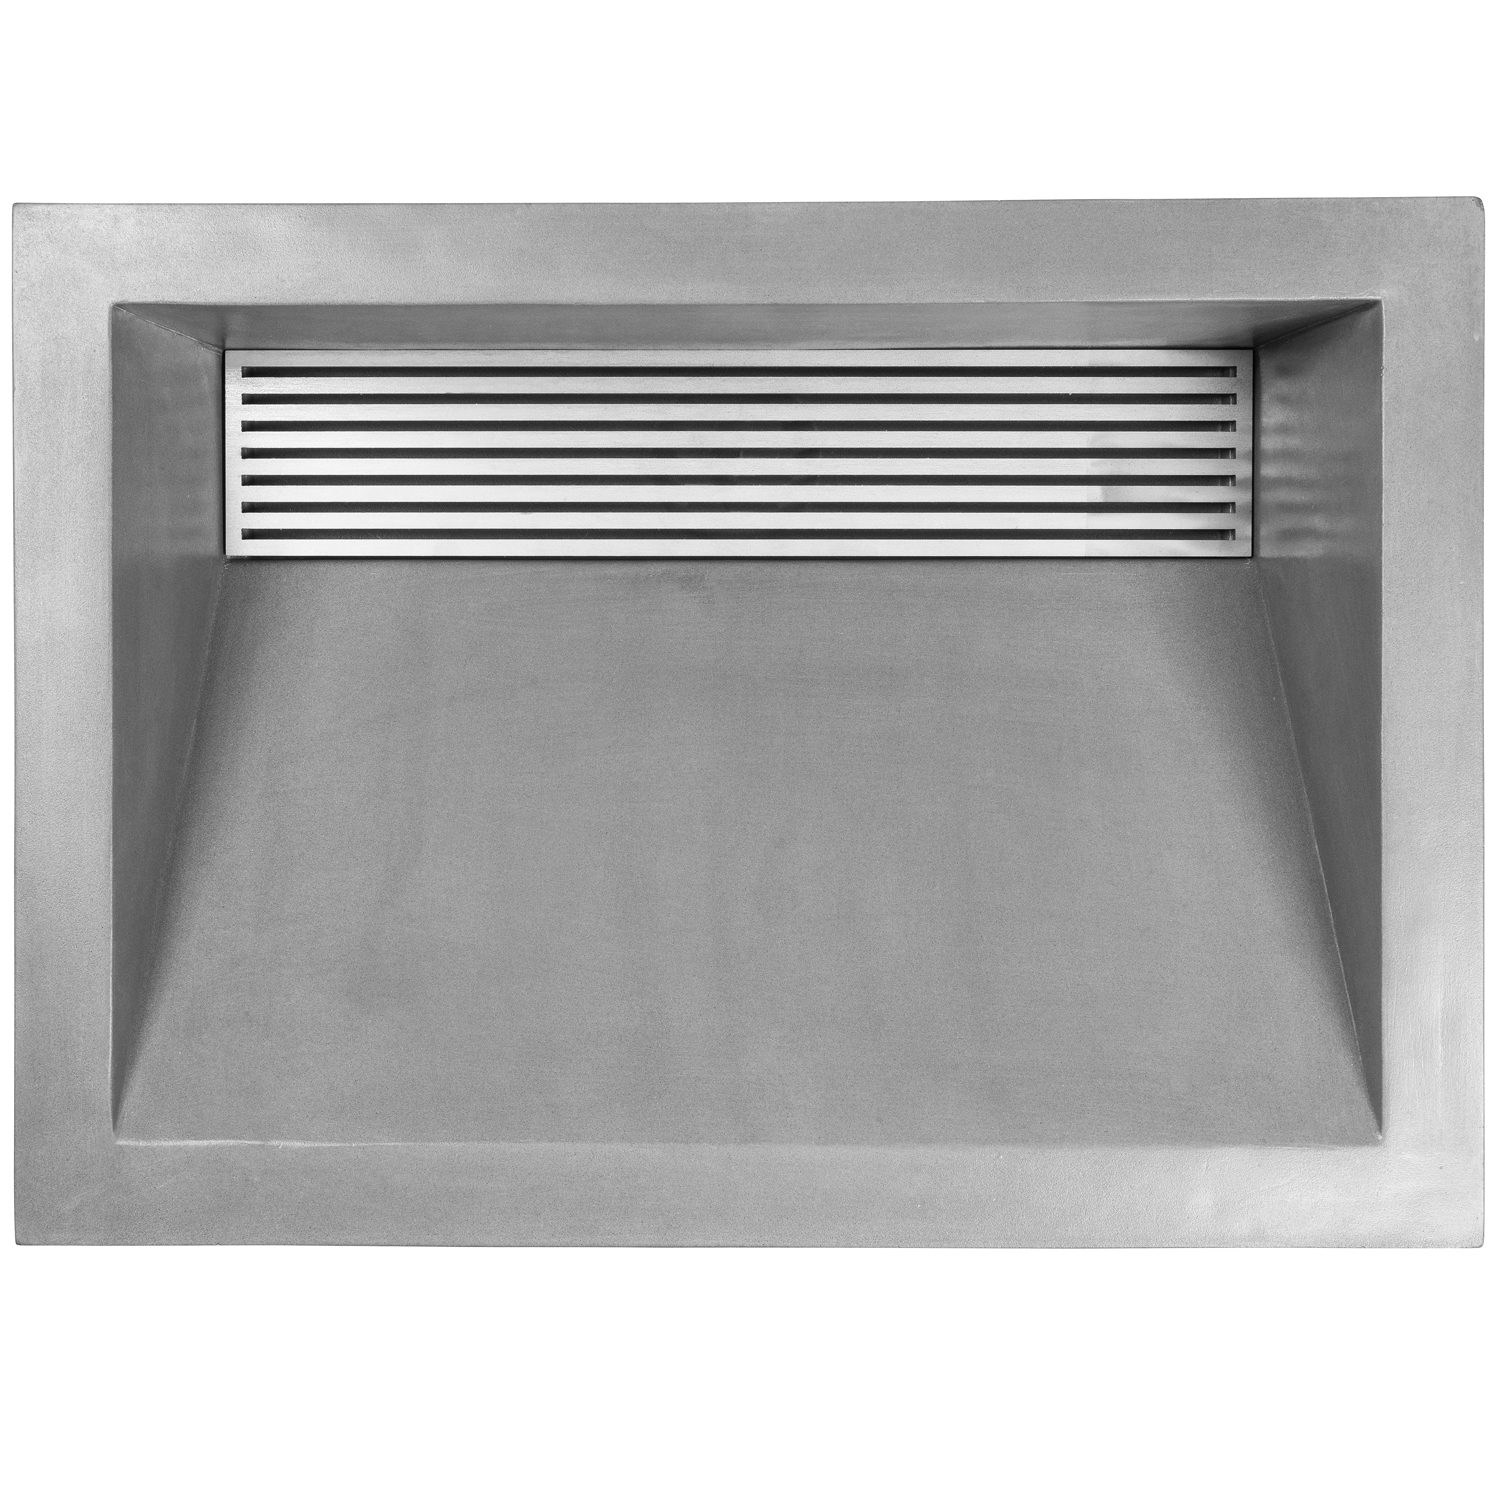 Copy of AC01DI G Shown with optional GC001 Square Bars Grate SS (Satin Stainless Steel)